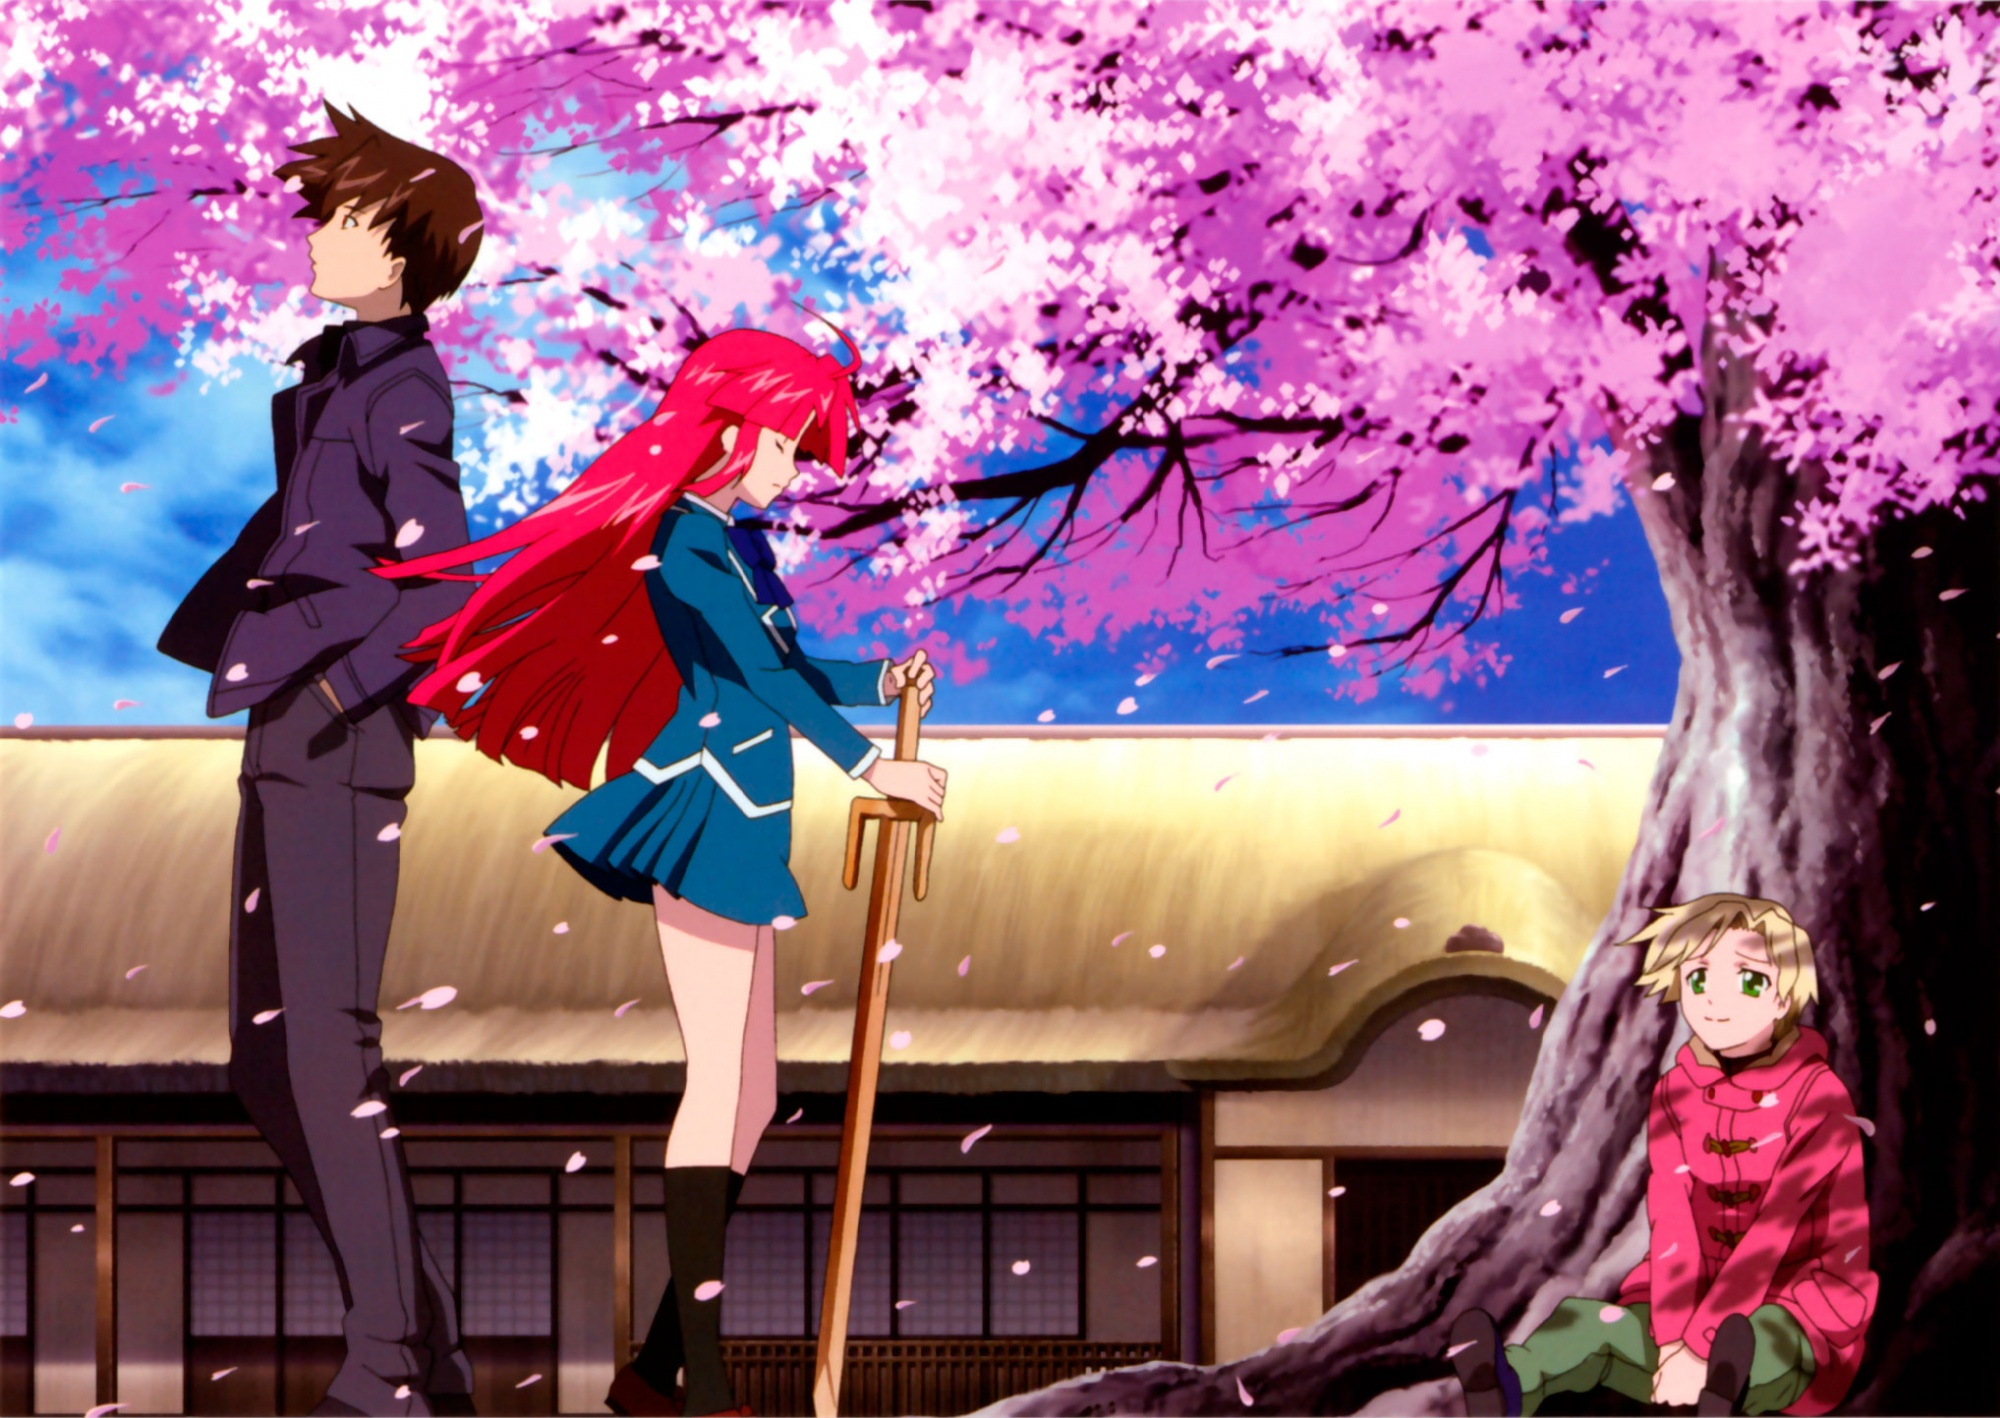 No Love Wallpaper Hd : 11 Kaze No Stigma HD Wallpapers Backgrounds - Wallpaper Abyss